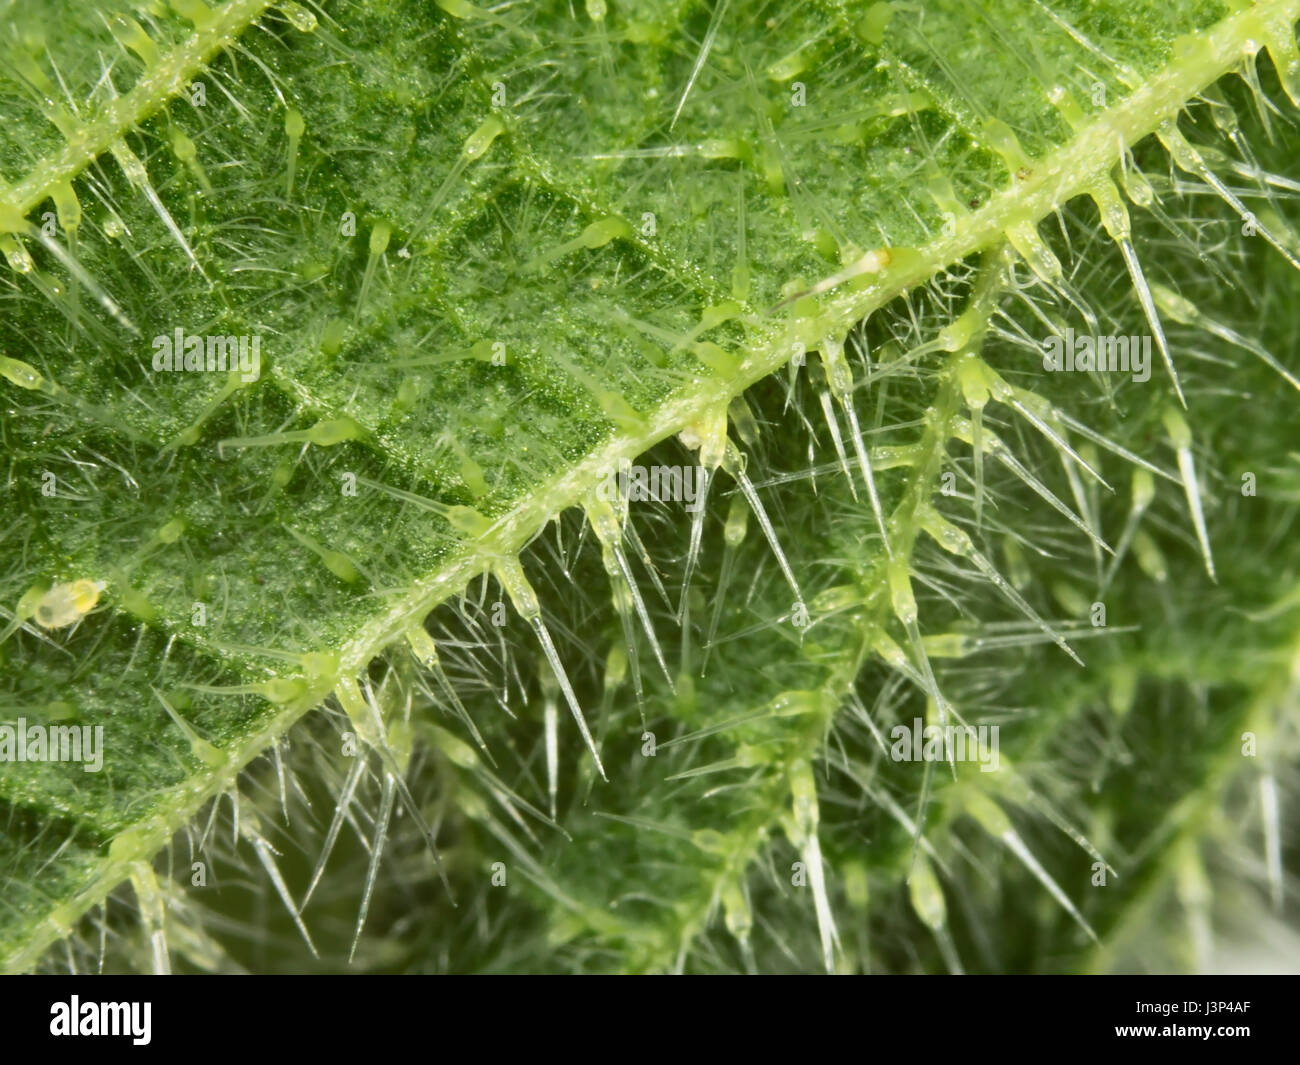 Macro of the stinging spines / hairs on the underside of a nettle leaf - Stock Image